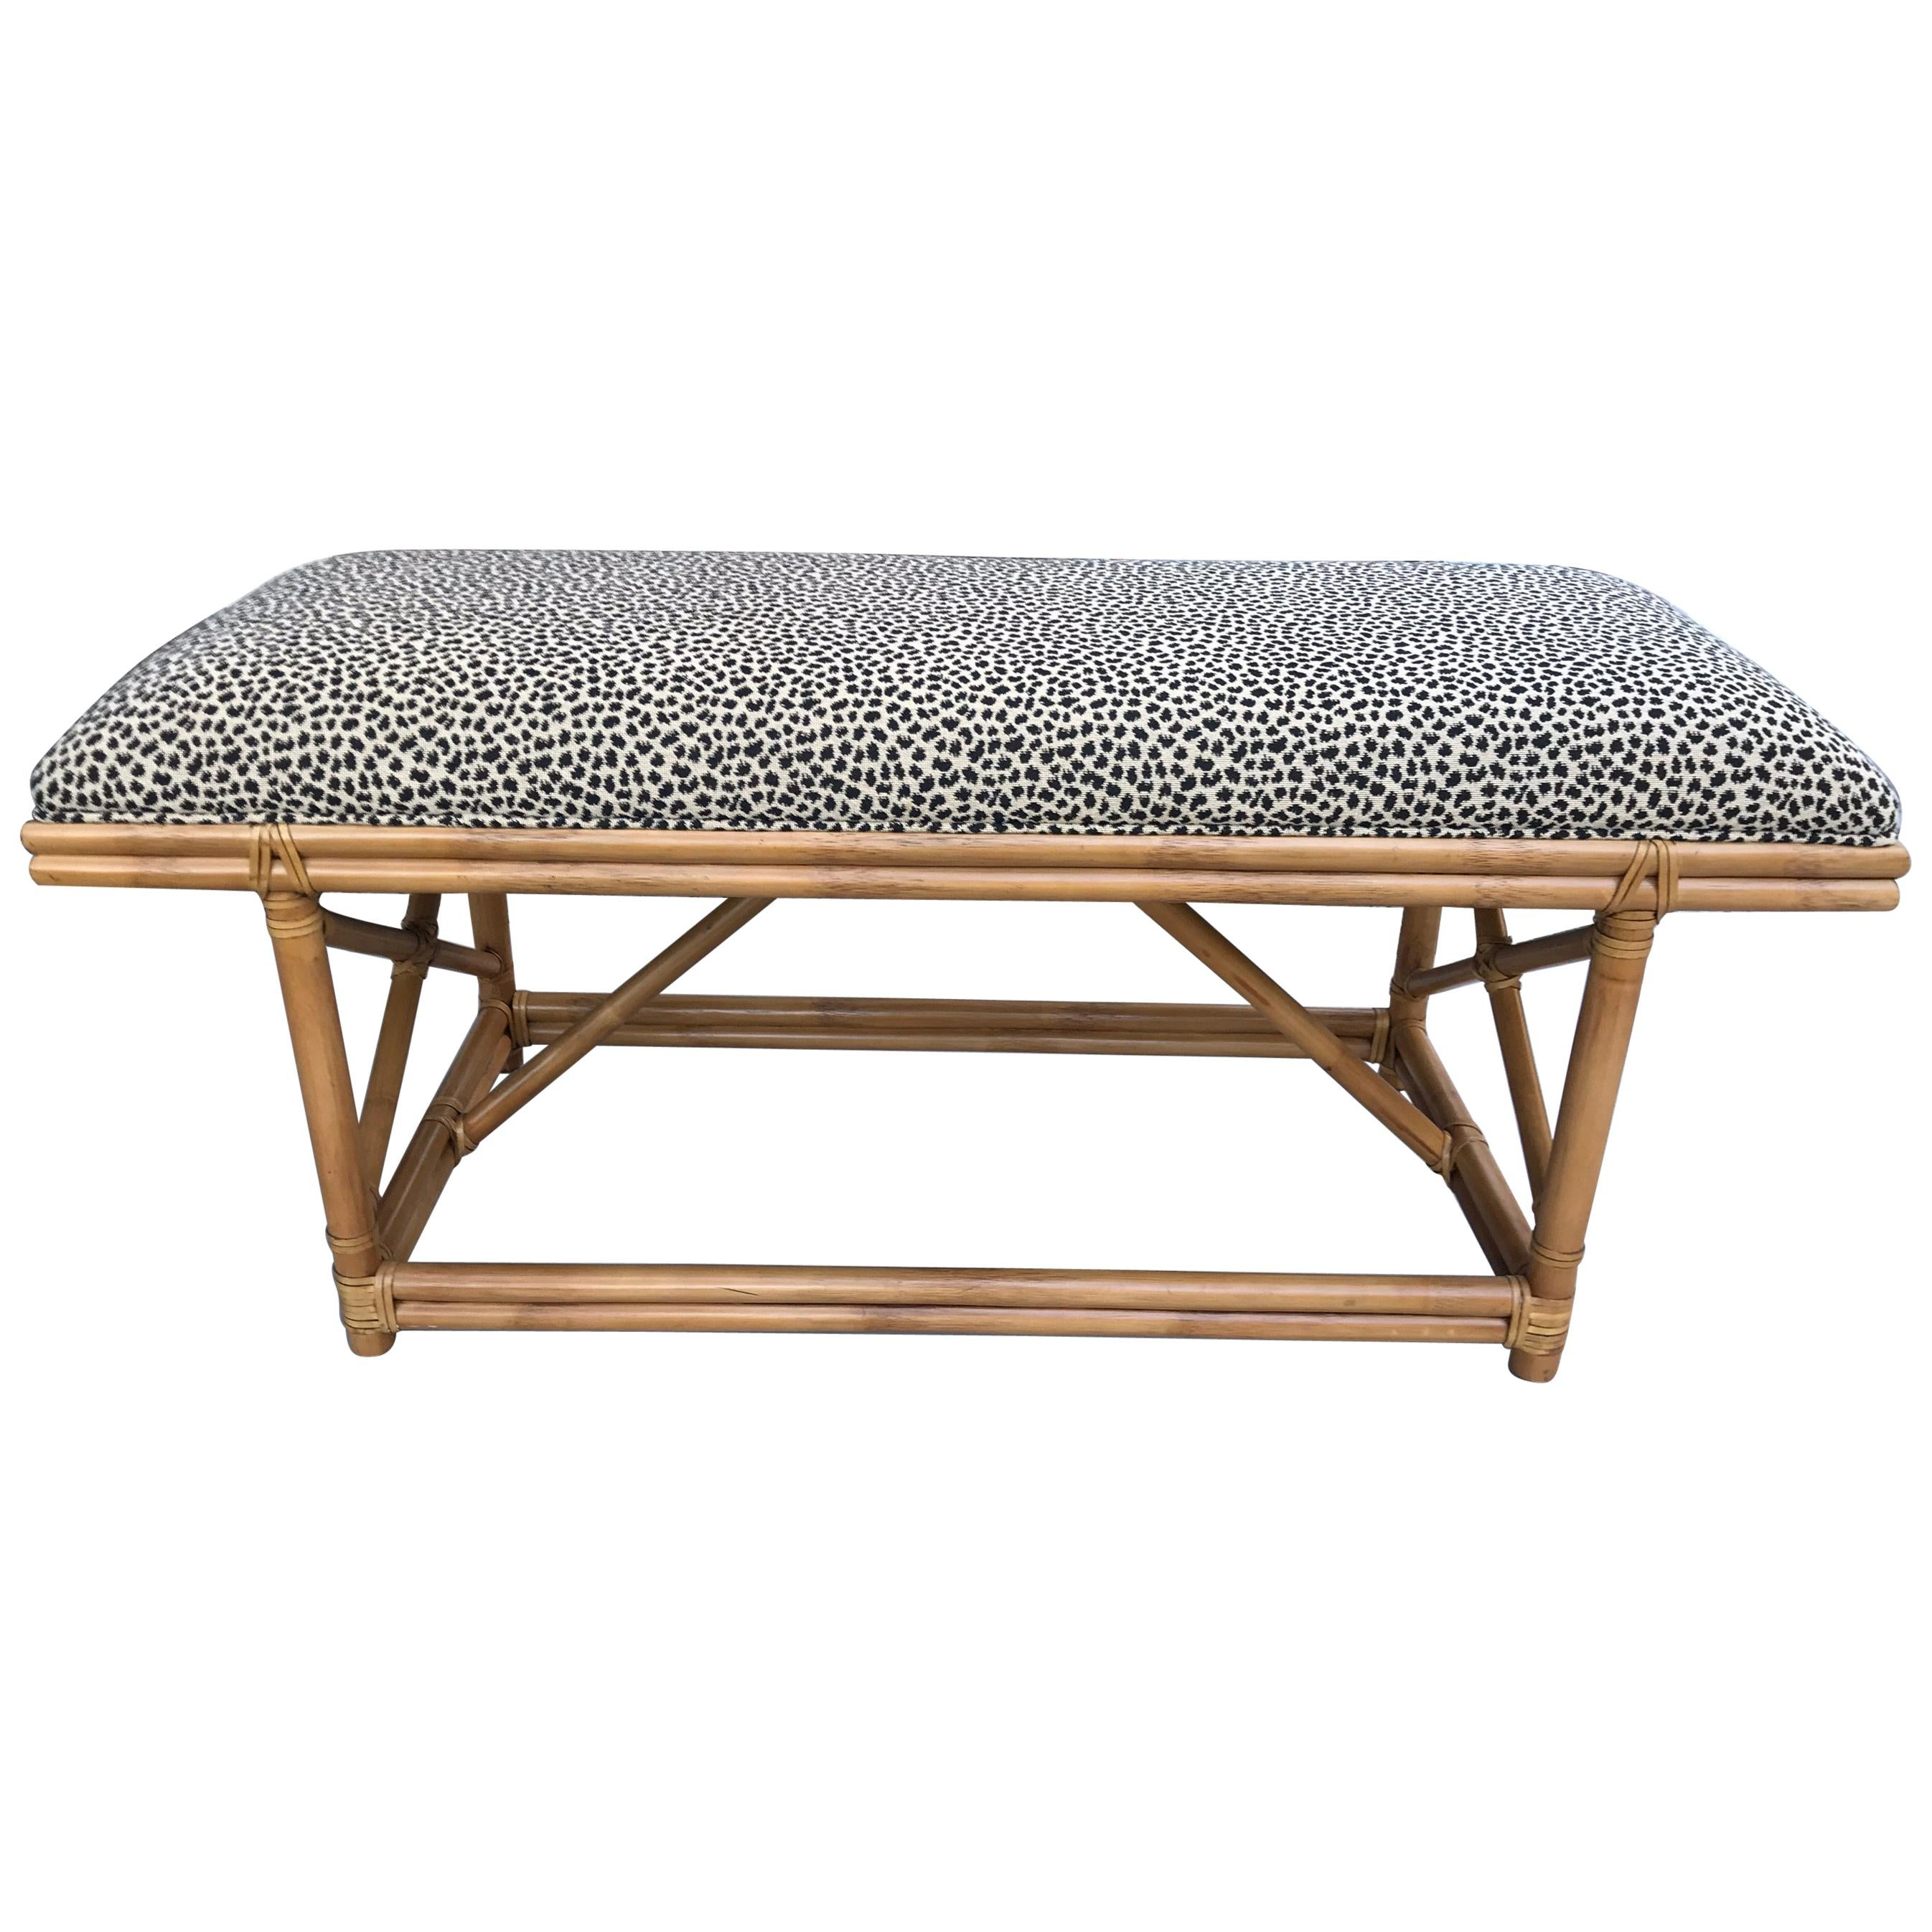 Ficks Reed Bamboo Upholstered Bench